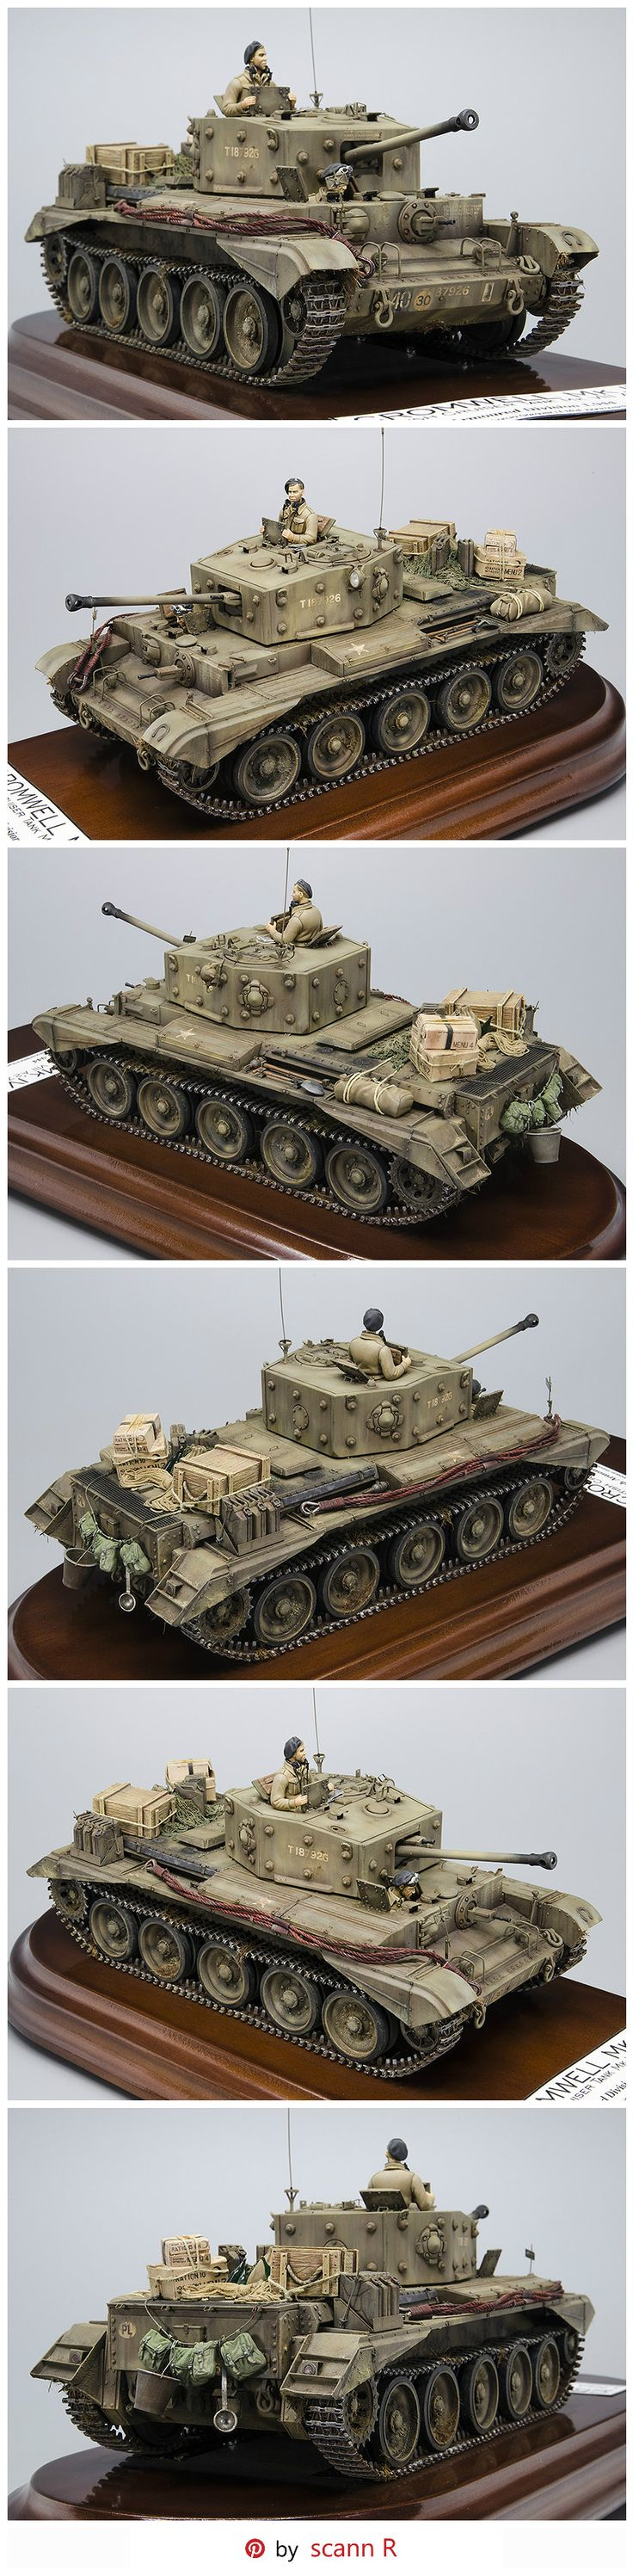 868f10736c0814279e9fcfca39e6eb59--xe-t%C4%83ng-scale-models Great Description About atlas Recovery Tank with Inspiring Images Cars Review